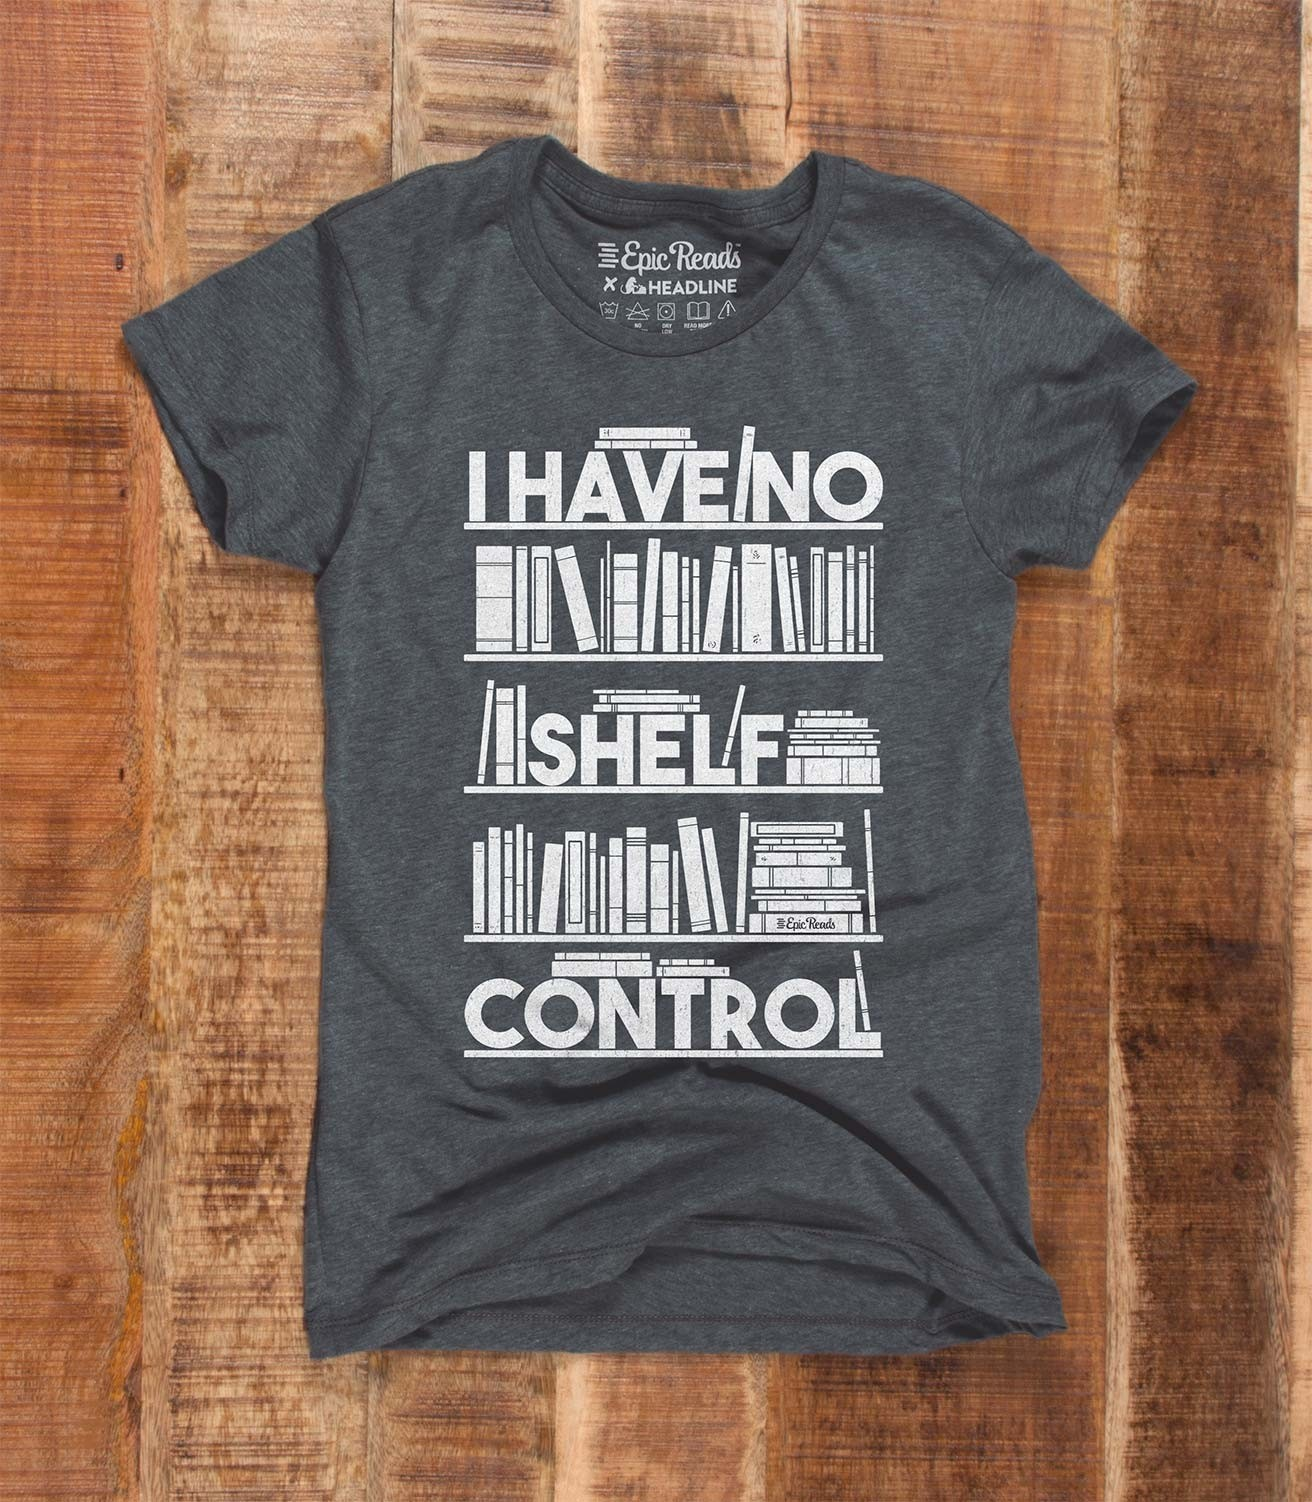 Image For Epic Reads x Headline: I HAVE NO SHELF CONTROL Womens Tee